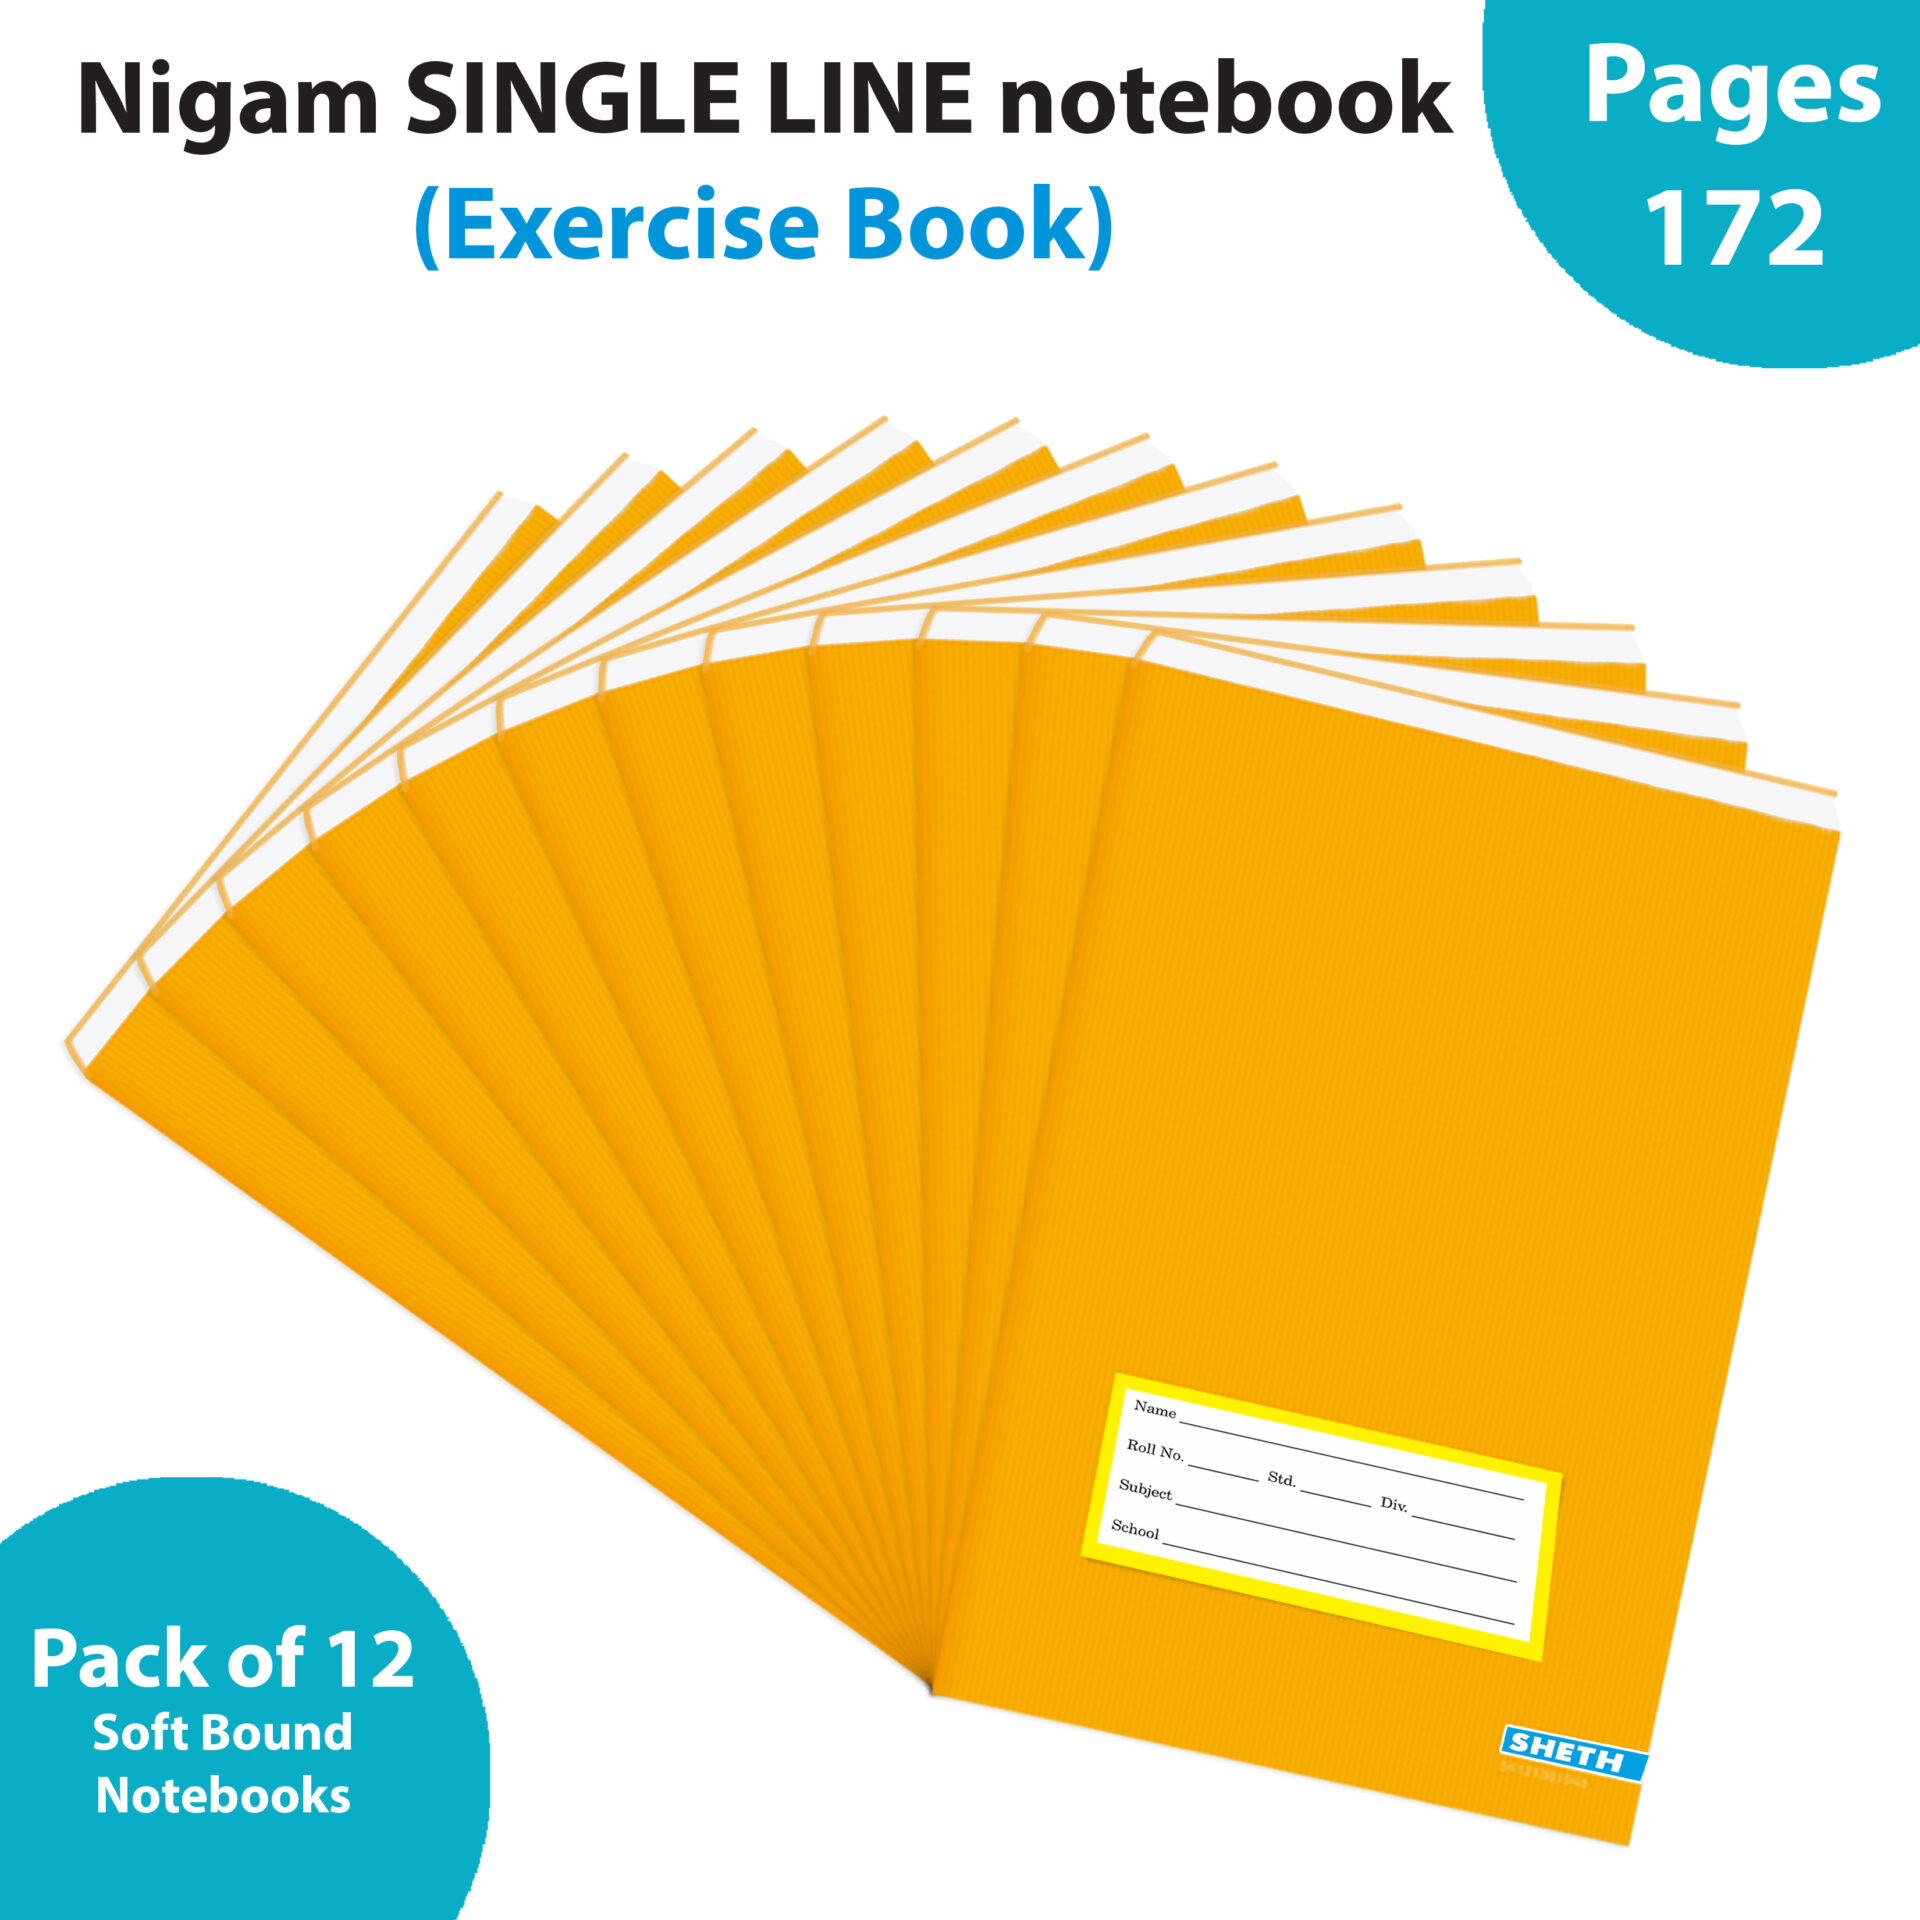 Nigam Single Line Long Note Book 172 Pages Soft Bound Set of 12 1